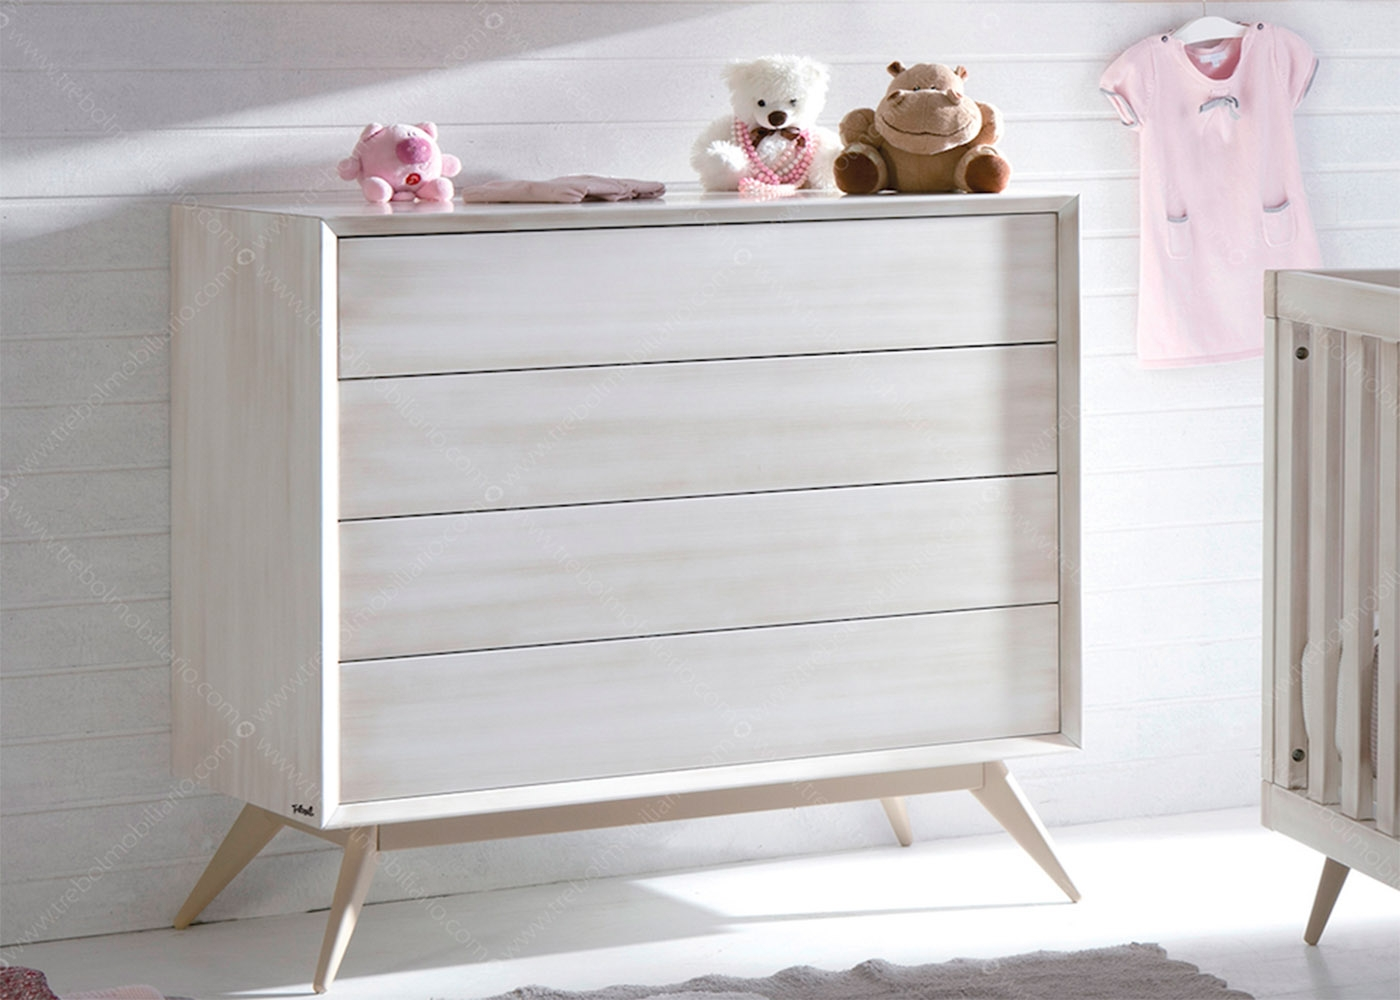 chambre de b b chambre d 39 enfant design scandinave chez ksl living. Black Bedroom Furniture Sets. Home Design Ideas